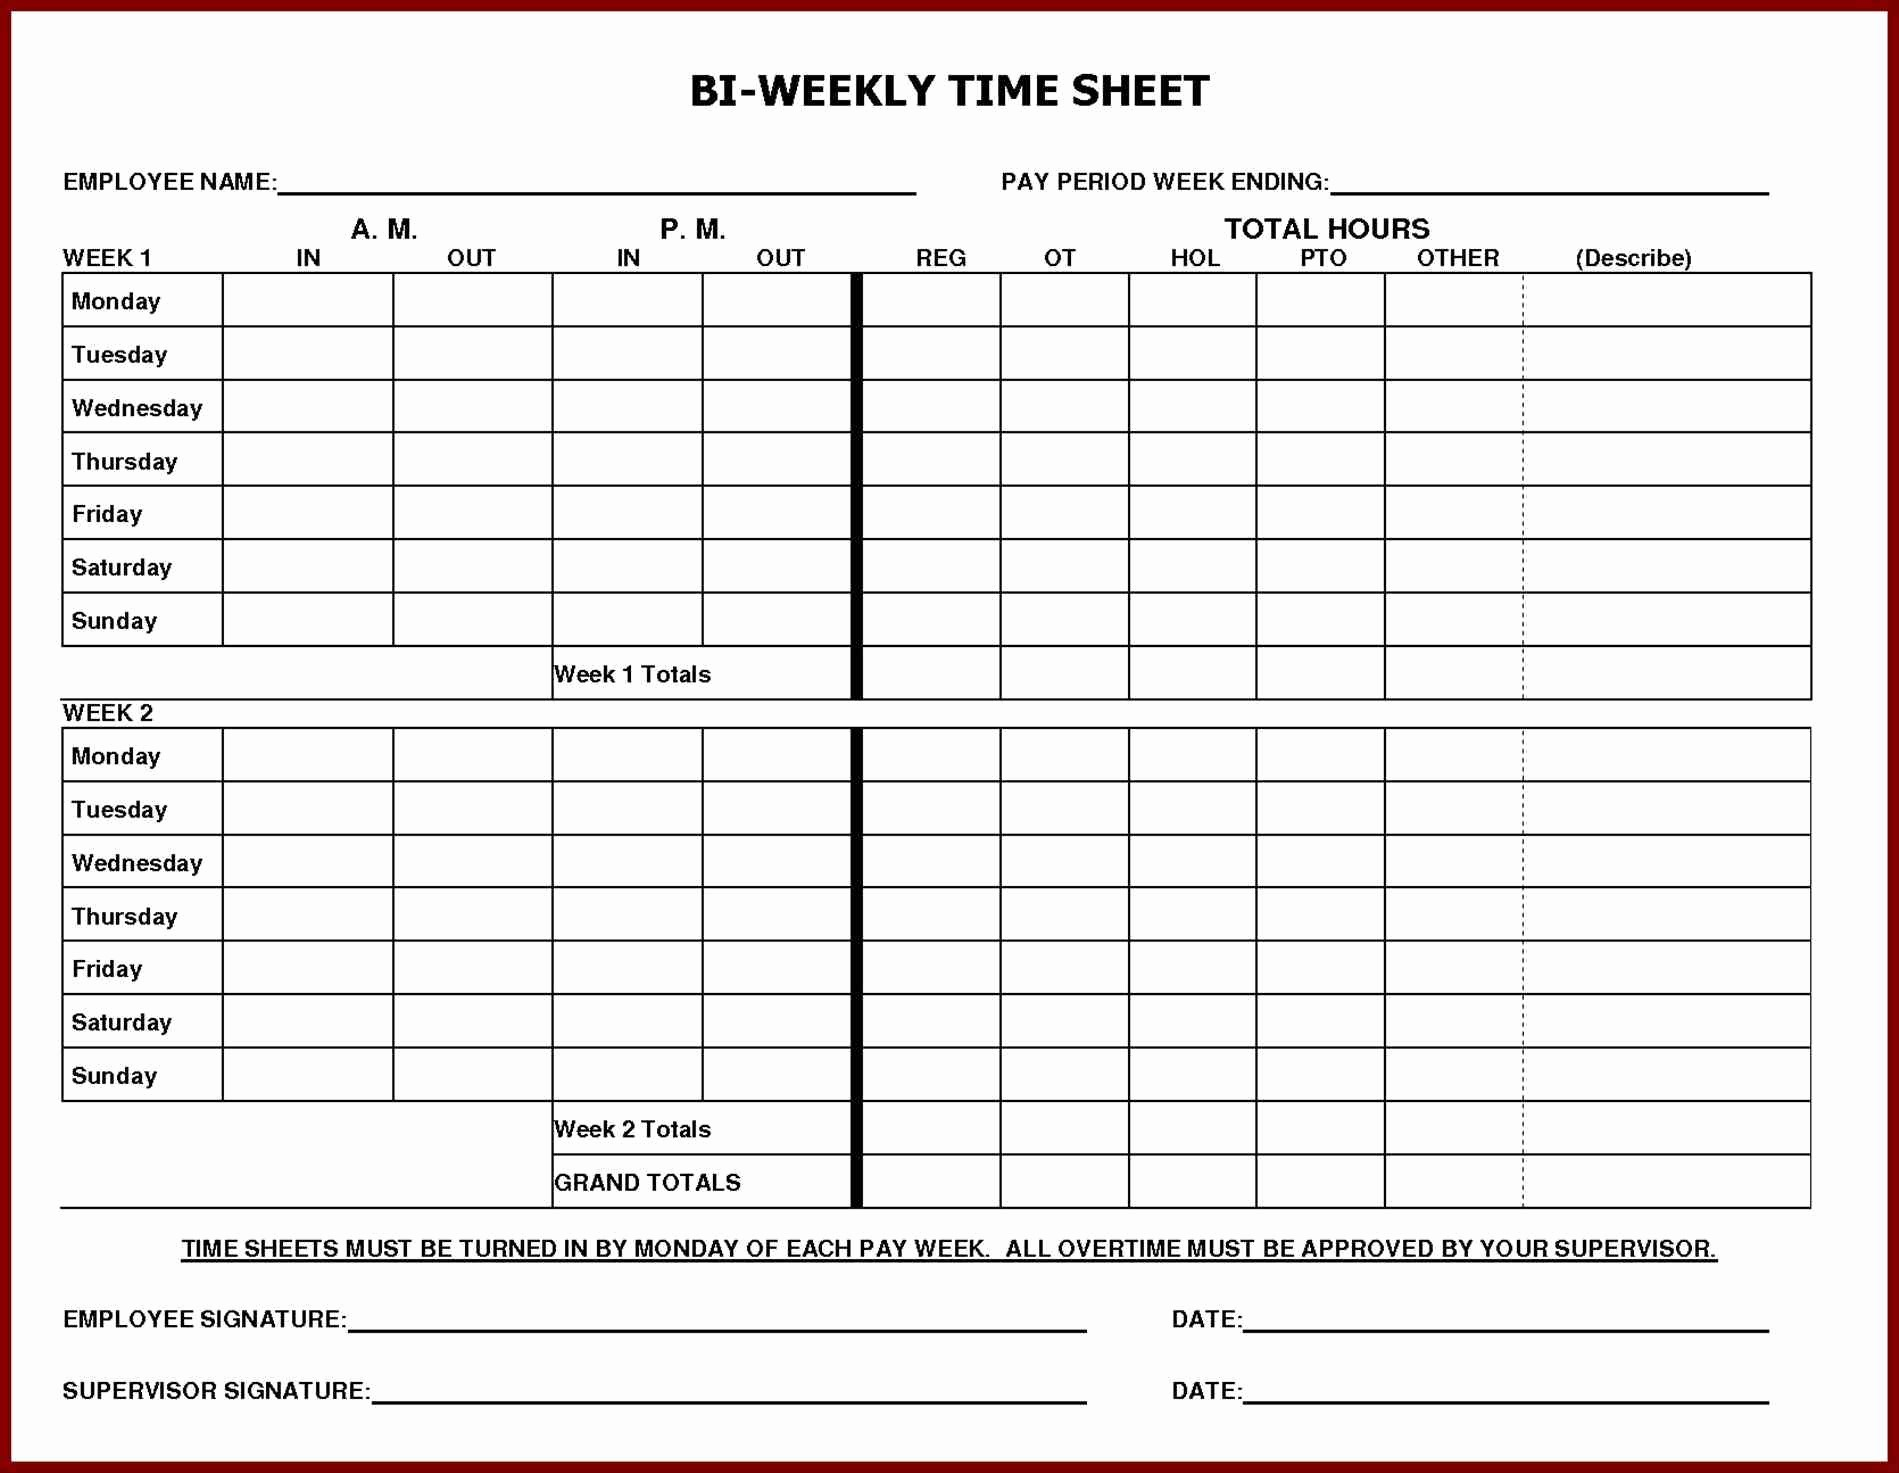 Daily Timesheet Template Free Printable New Daily Time Sheet Printable Printable 360 Degree